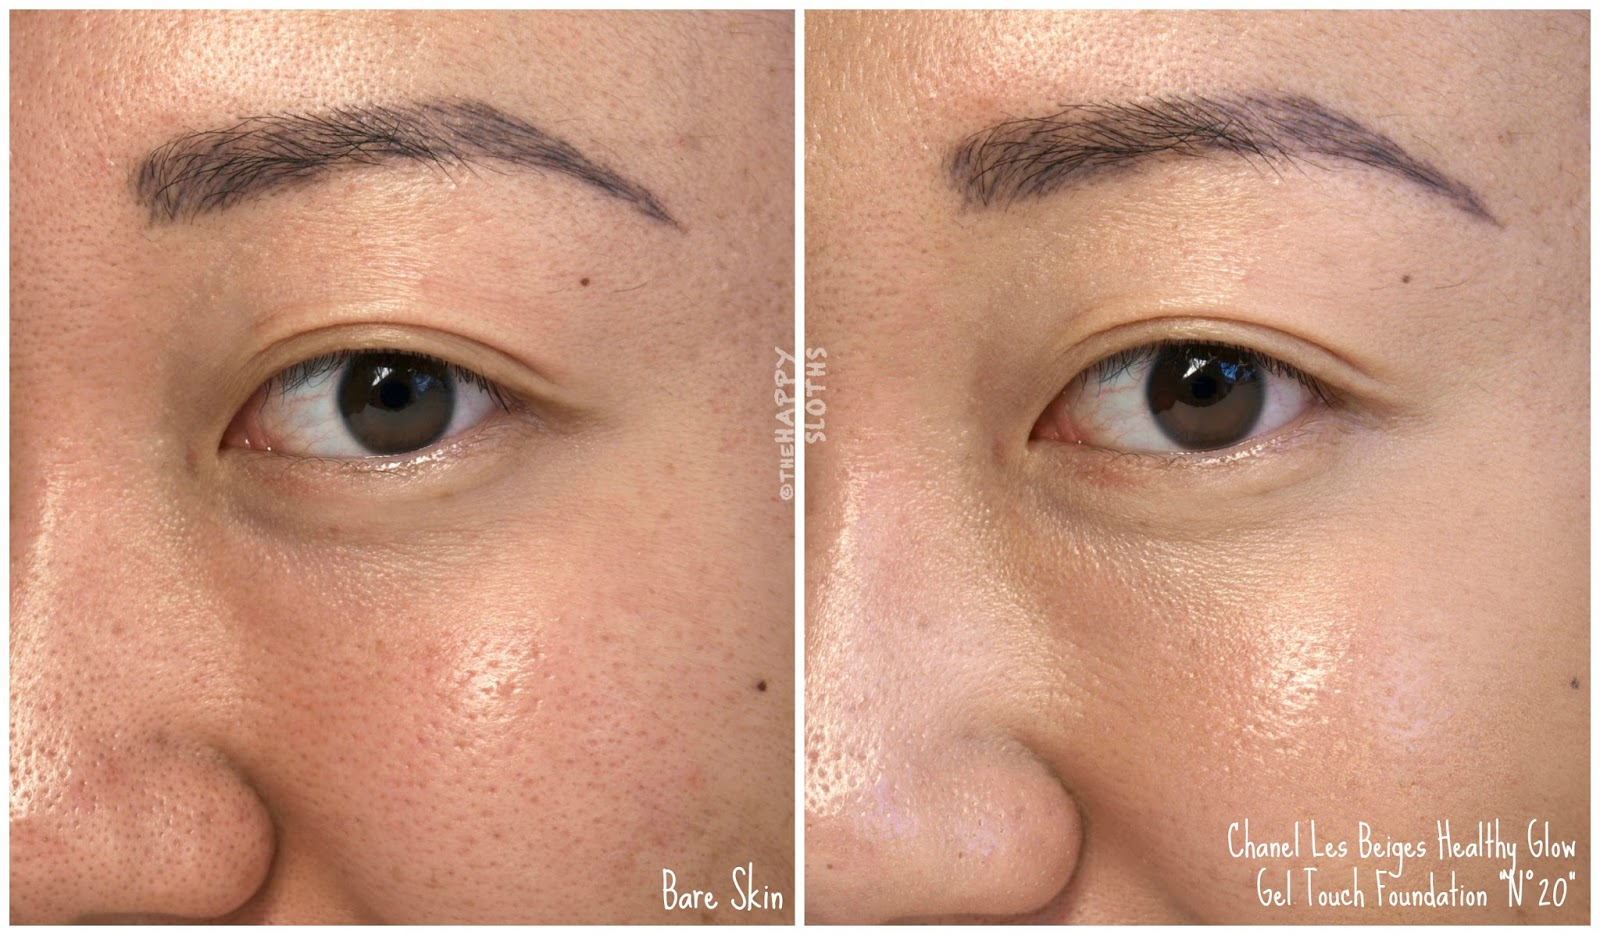 """Chanel Les Beiges Healthy Glow Gel Touch Foundation """"N°20"""" Review Swatches"""